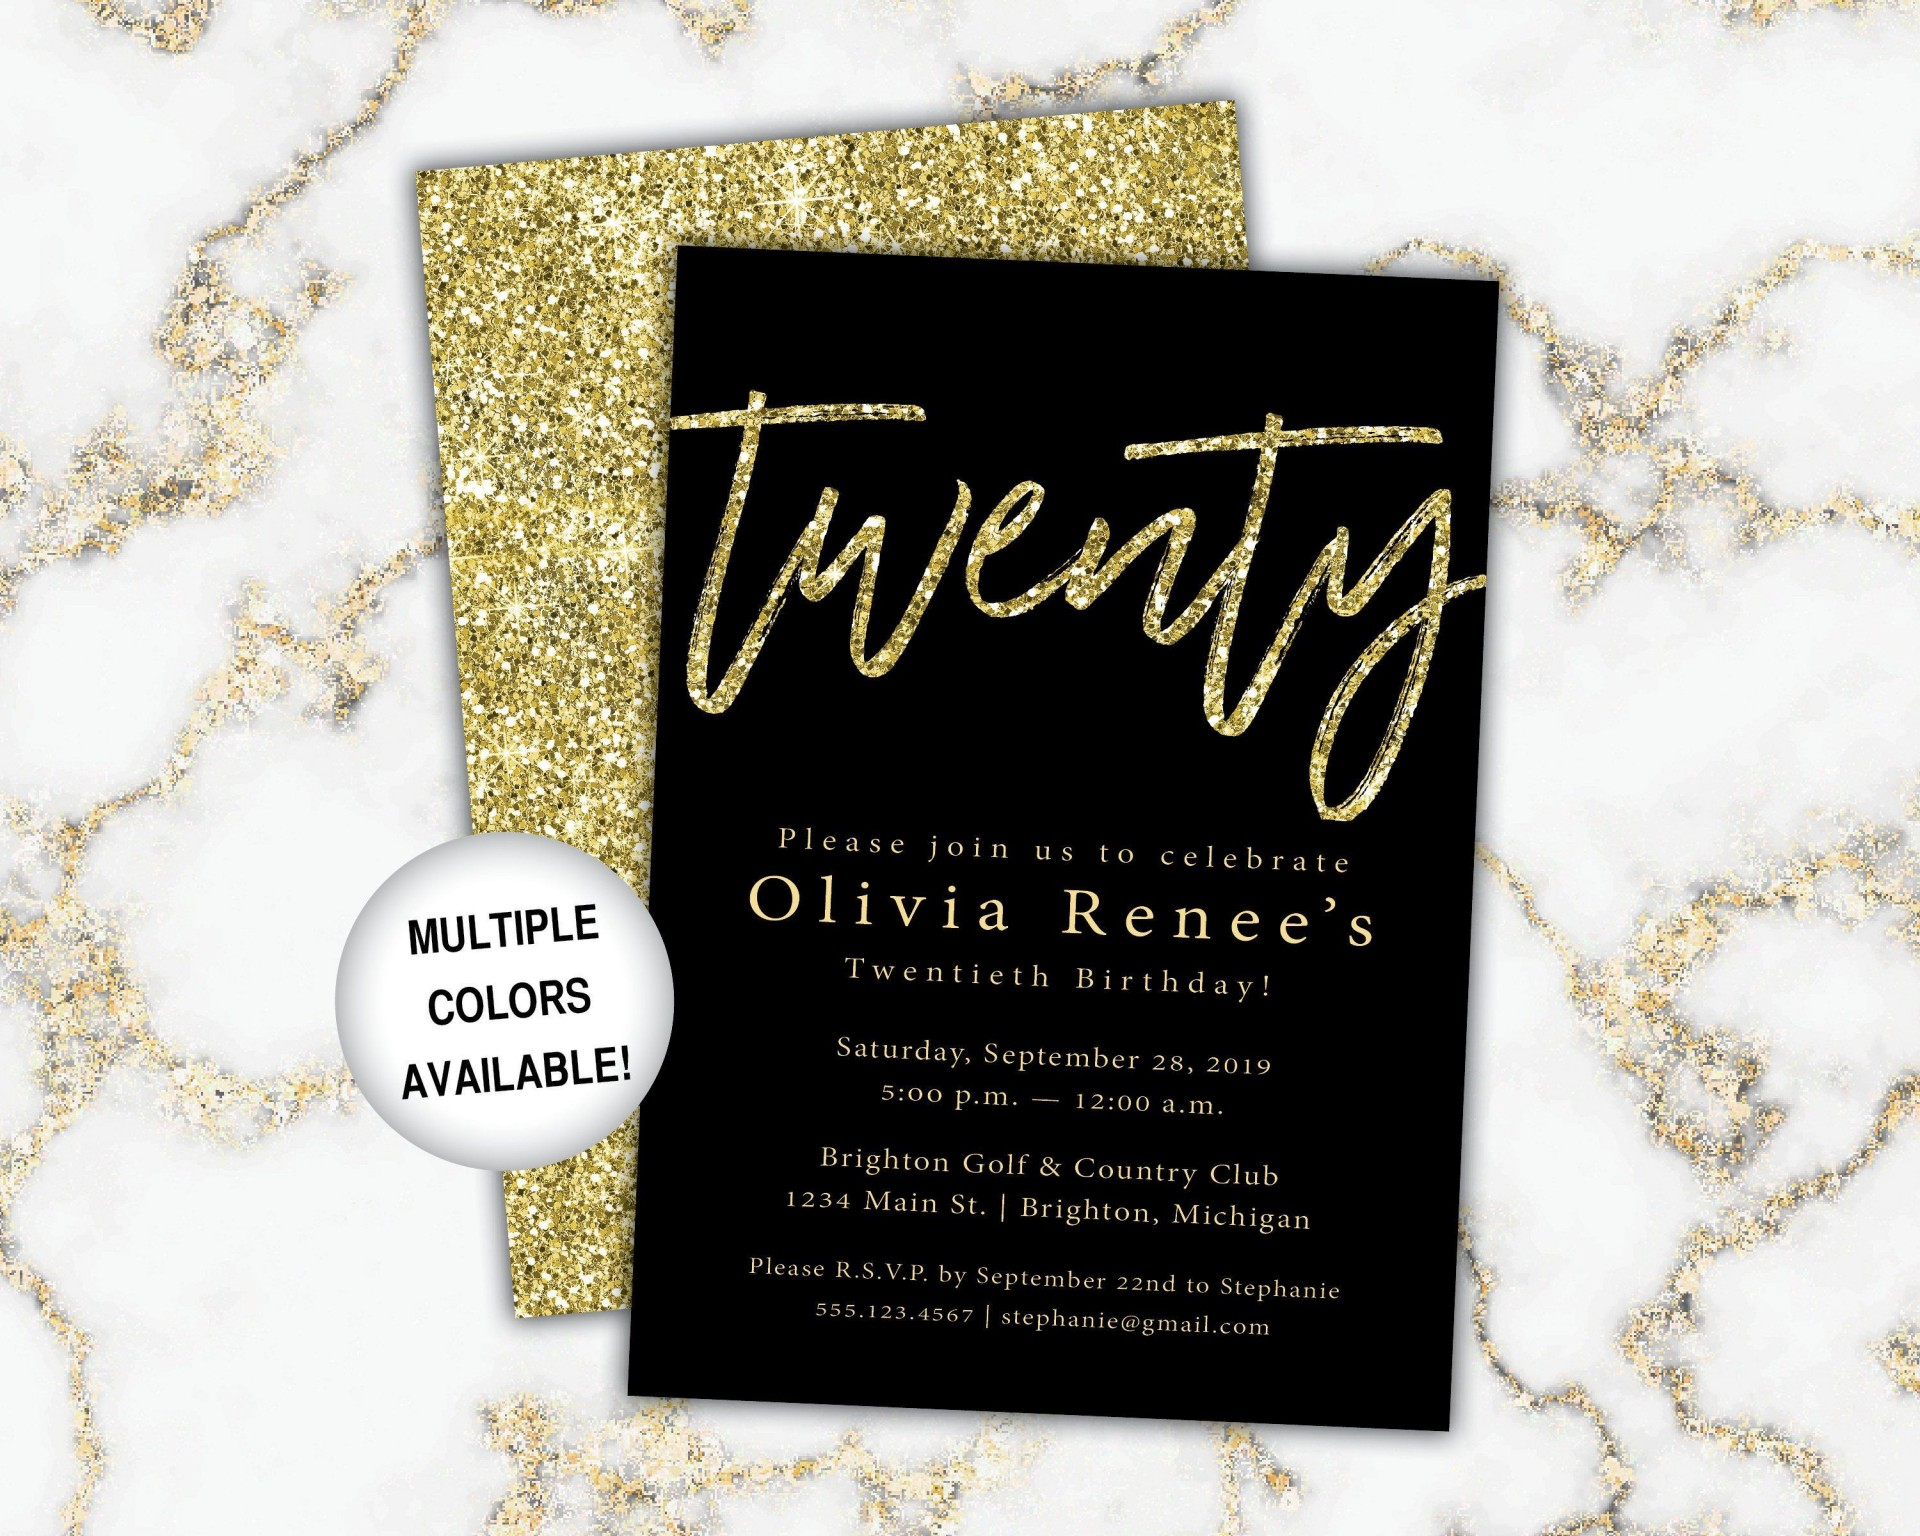 002 Astounding Black And Gold Invitation Template High Resolution  Design White Free Printable1920